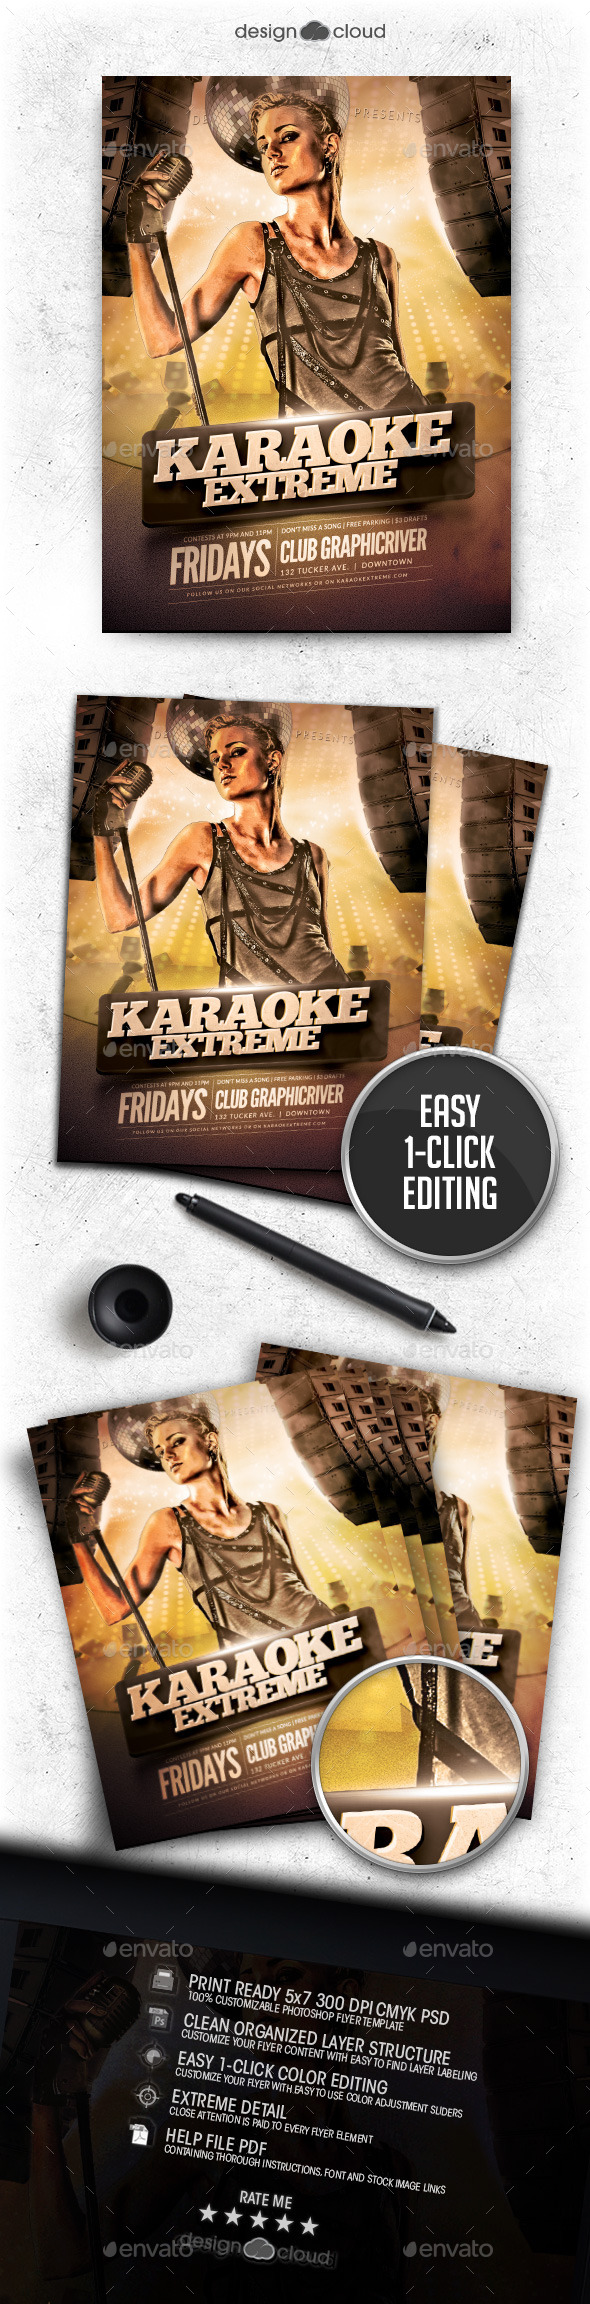 Karaoke Extreme Flyer Template - Clubs & Parties Events